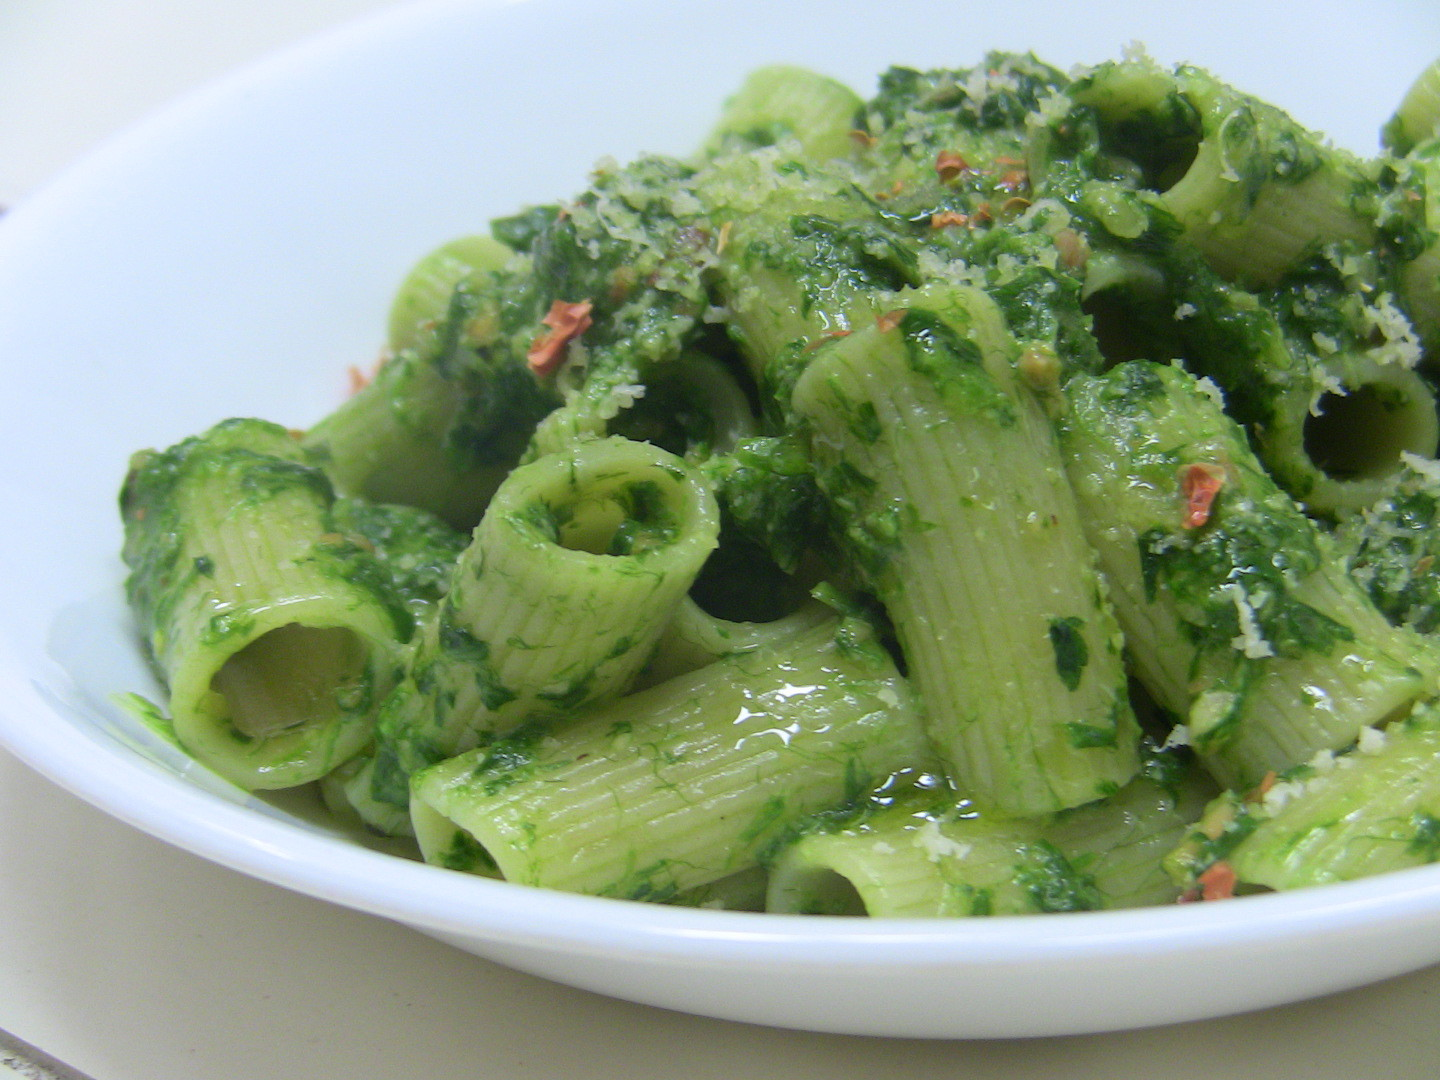 slowfoodbestfood: RAMP PESTO